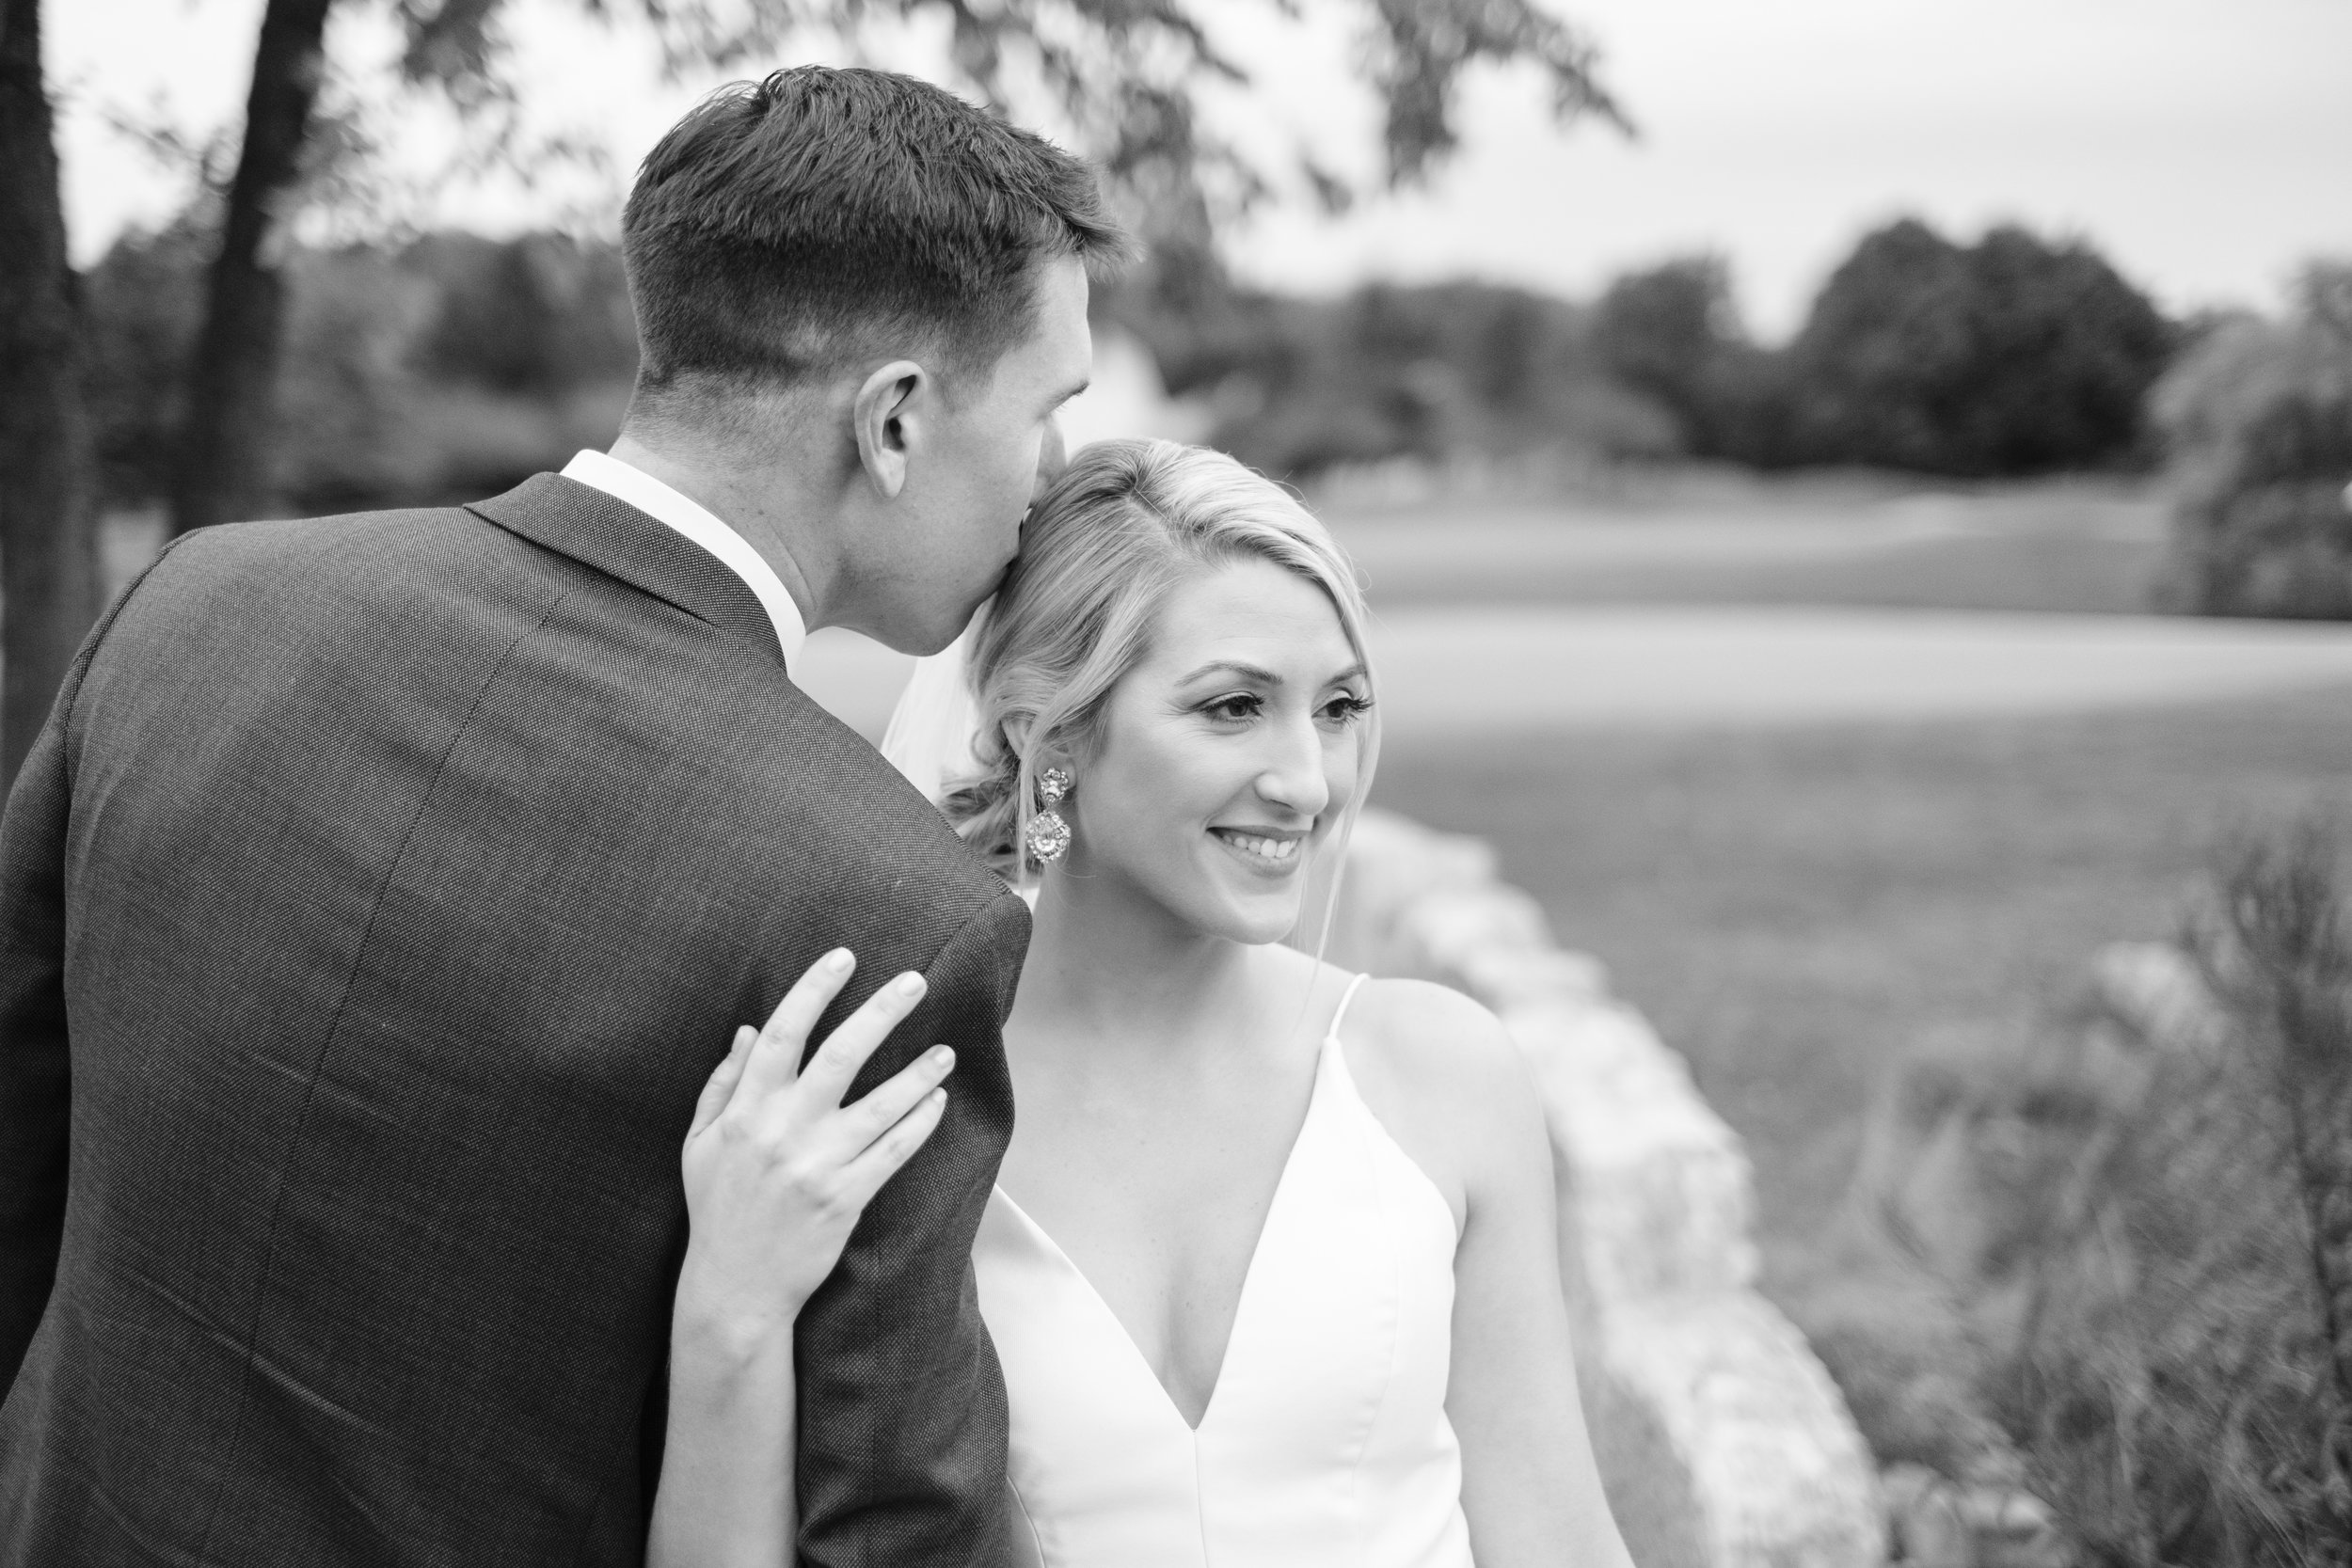 Rockford Bank and Trust Pavilion classic black and white wedding photography